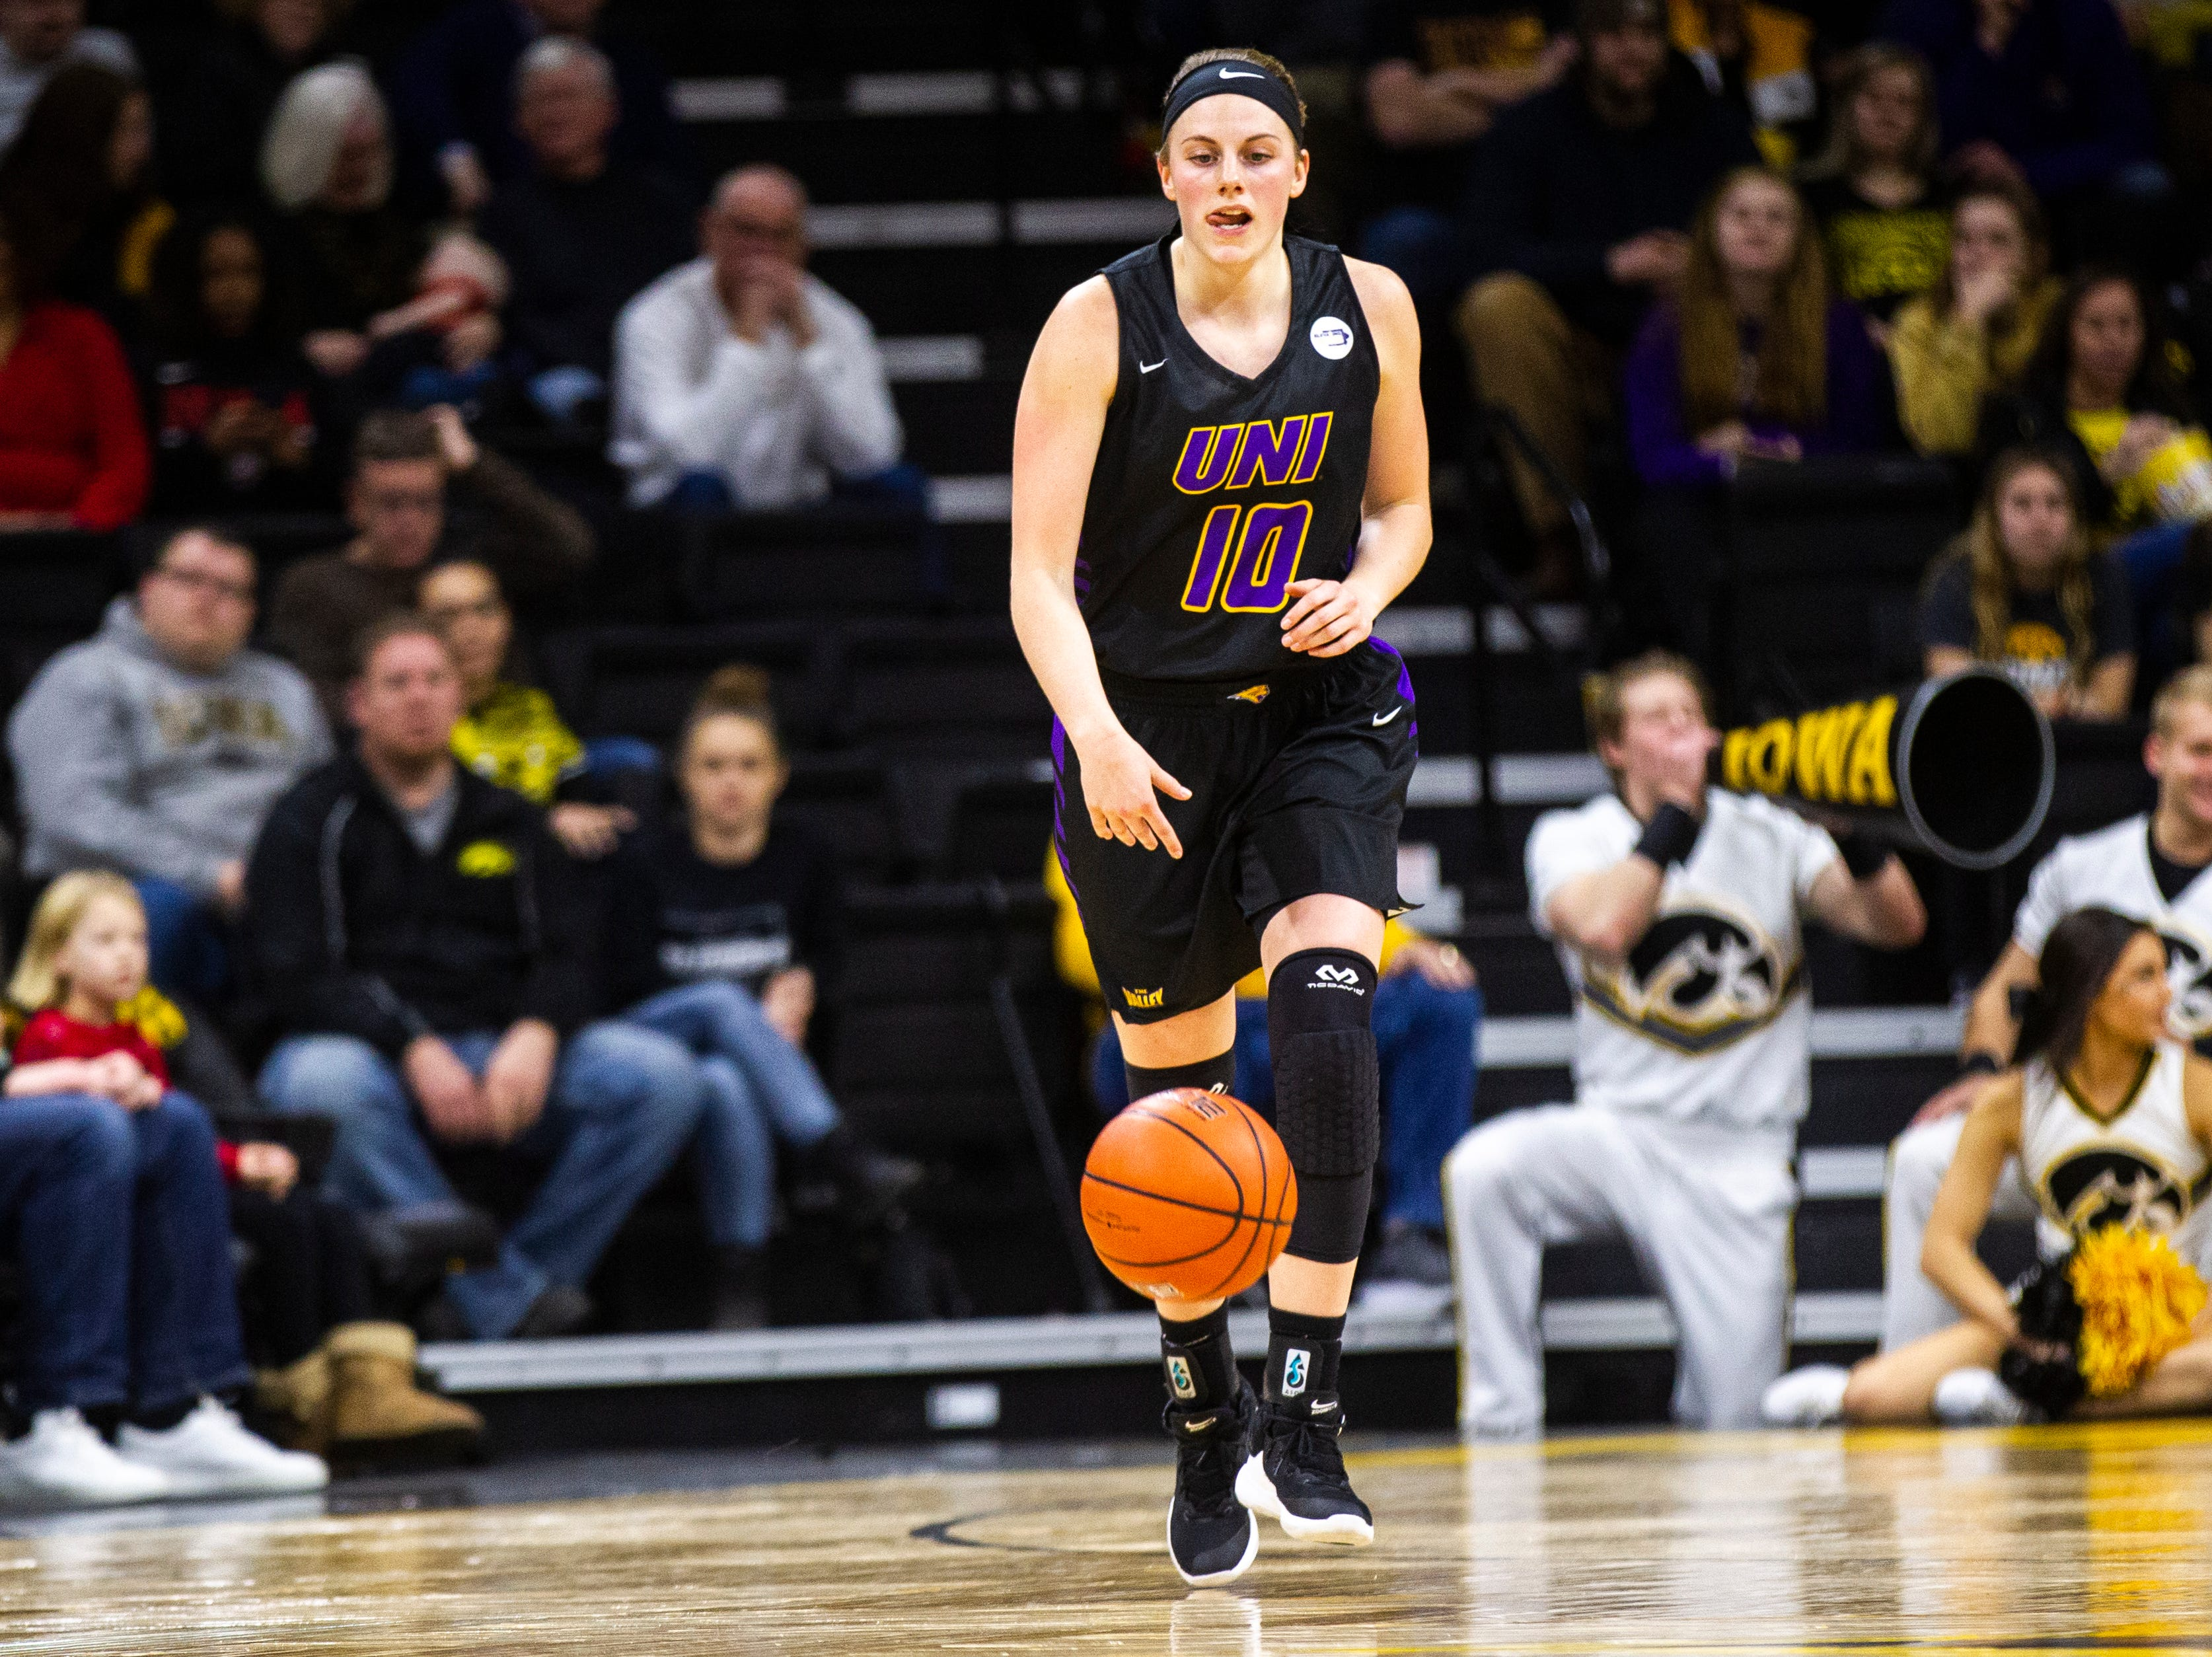 Northern Iowa guard Ellie Howell (10) takes the ball up court during a NCAA women's basketball game on Sunday, Dec. 16, 2018, at Carver-Hawkeye Arena in Iowa City.